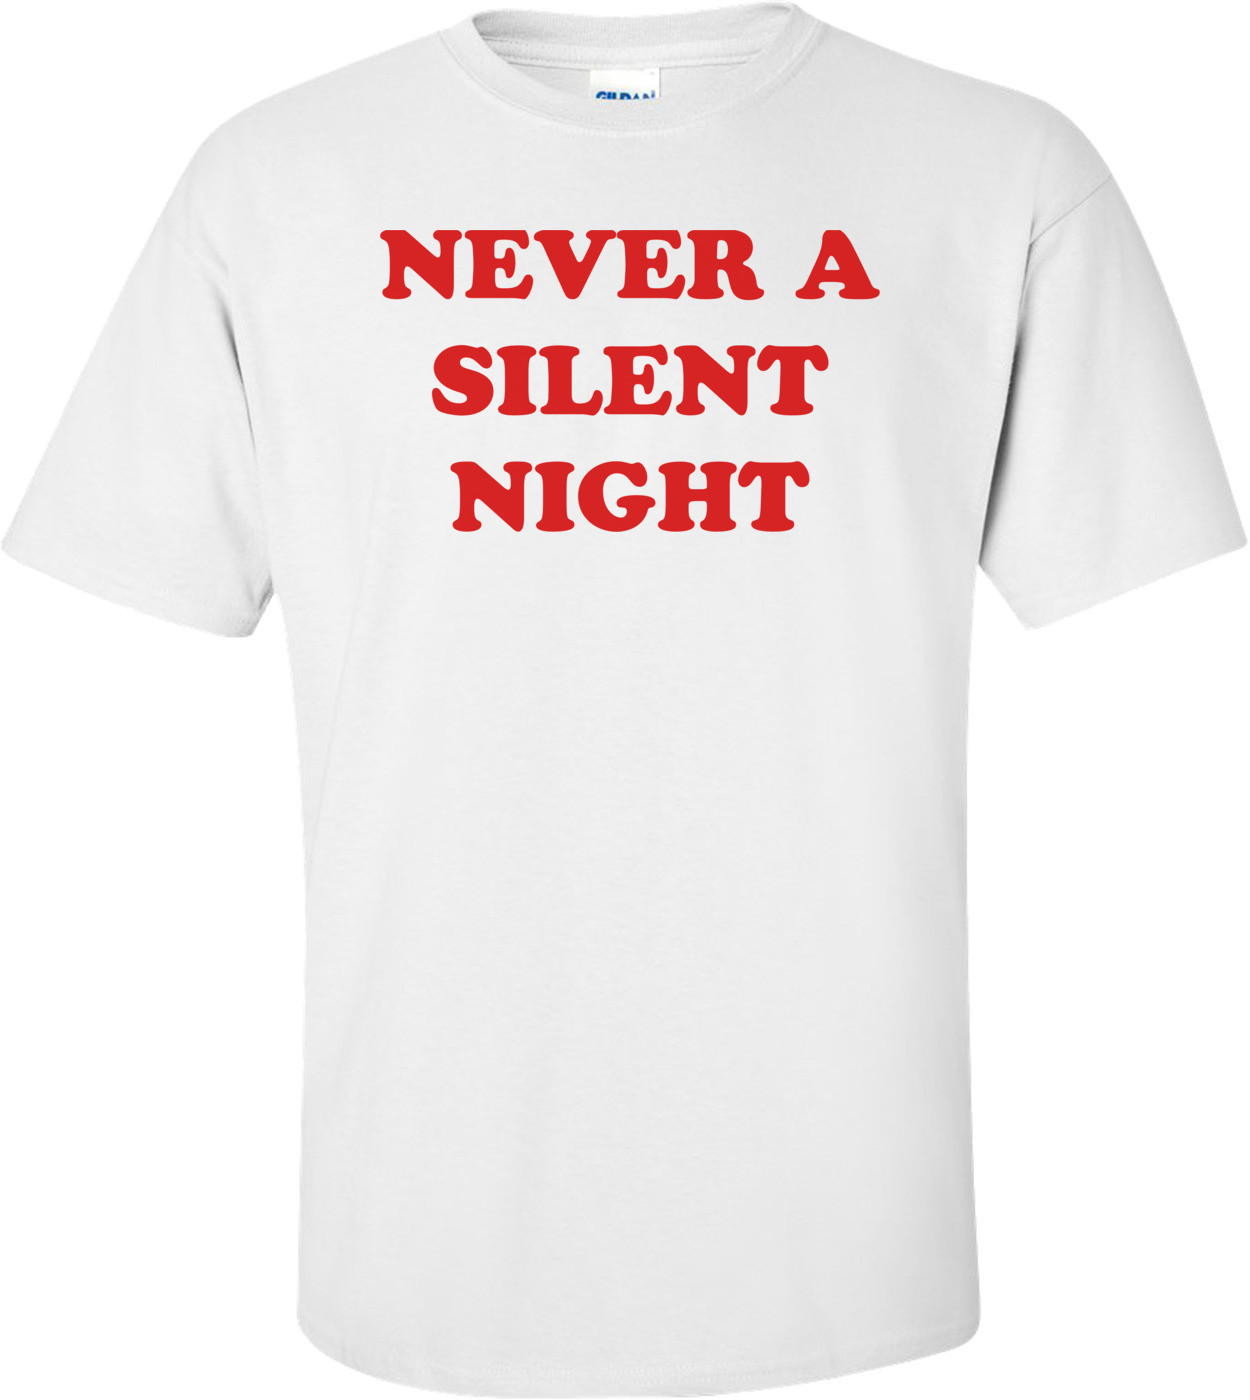 NEVER A SILENT NIGHT Shirt